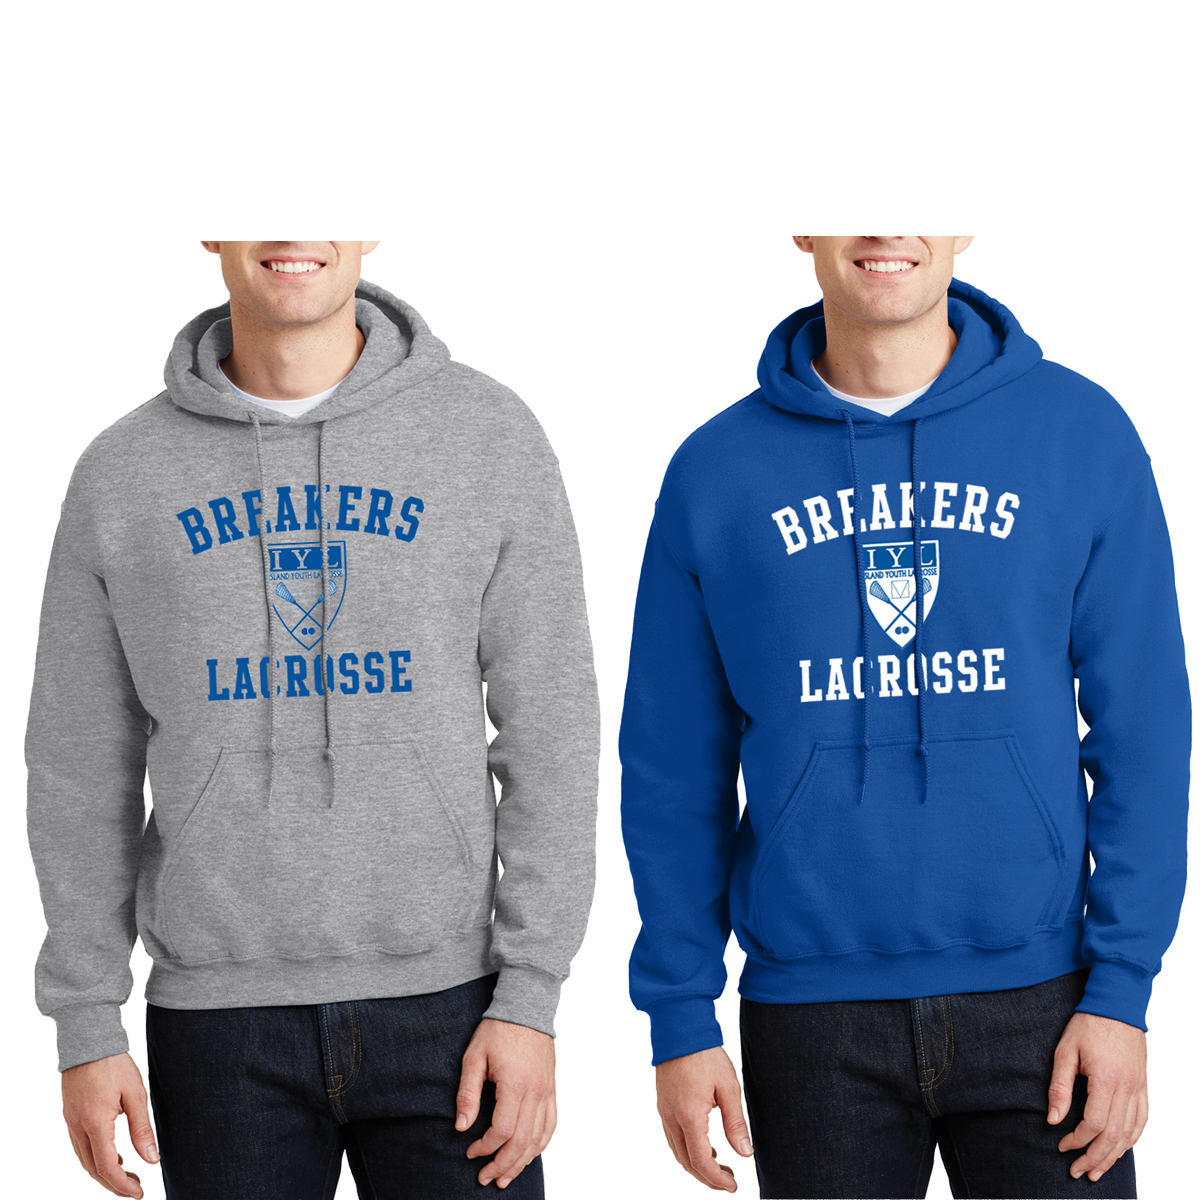 Island Youth Lacrosse - Adult Heavyweight Hoody